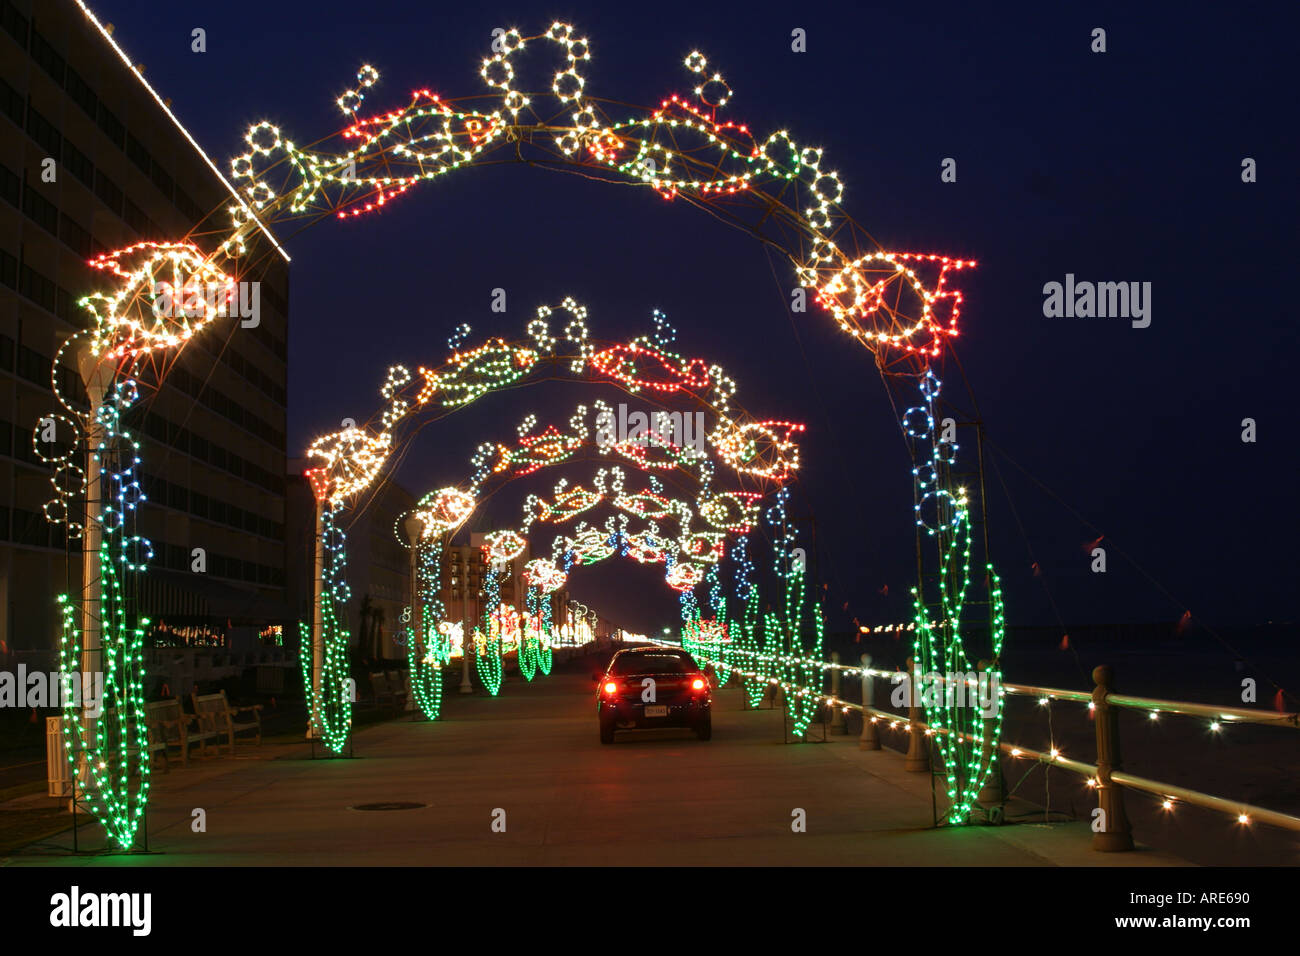 virginia beach virginia atlantic shore oceanfront holiday lights display boardwalk drive through stock image - Virginia Beach Christmas Lights